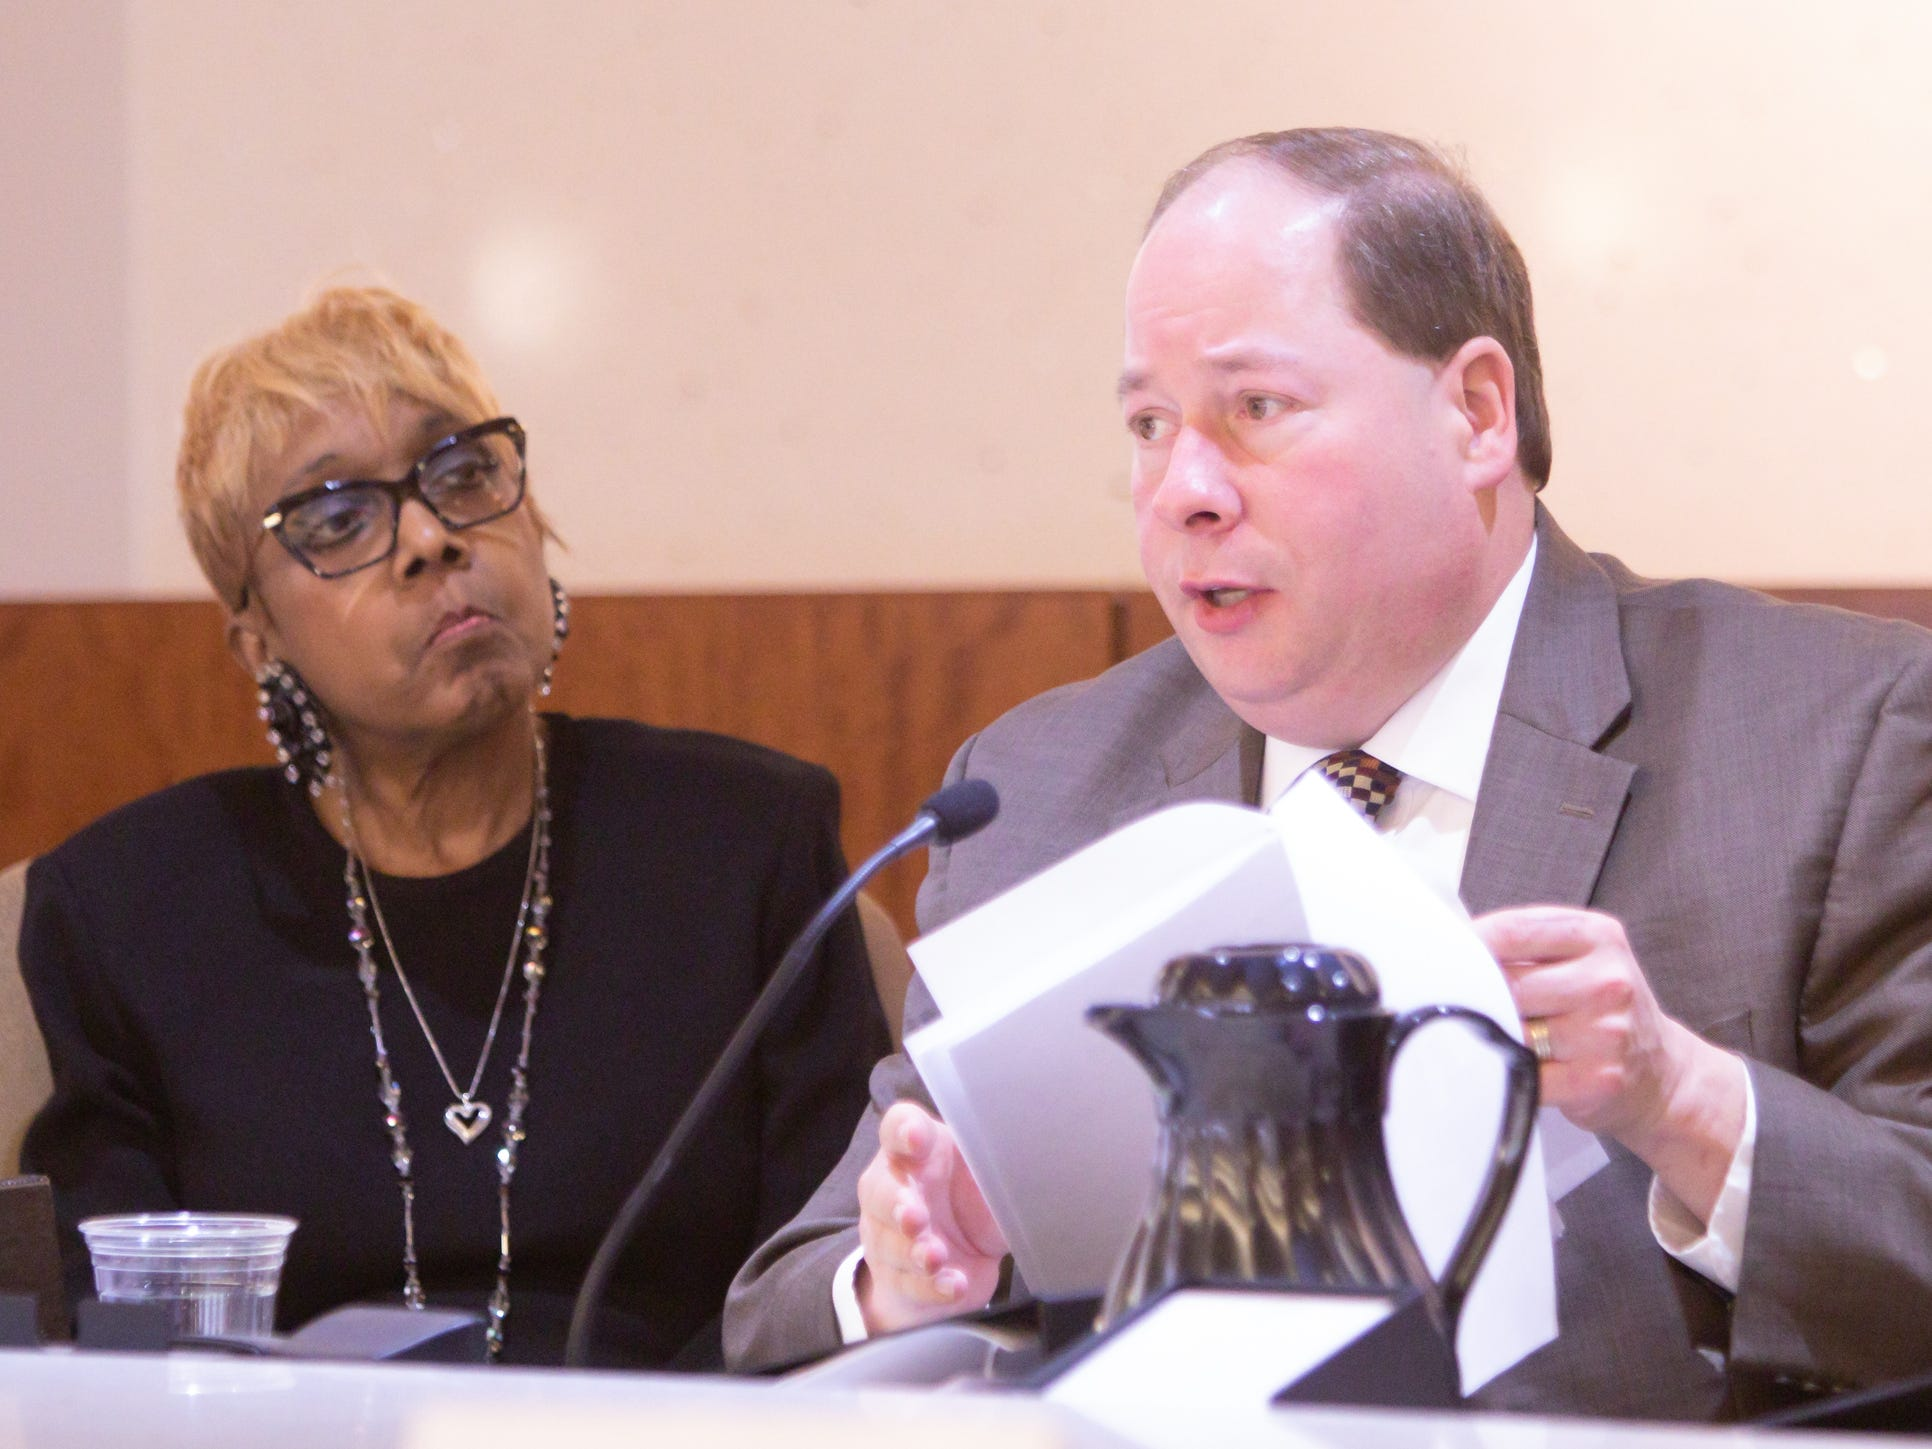 Judge Monte Burmeister, chairman of the Judicial Tenure Commission, speaks at a hearing Monday, March 4, 2019 over misconduct allegations involving Judge Theresa Brennan in Detroit as fellow commissioner and Judge Karen Fort Hood, secretary of the commission, listens.